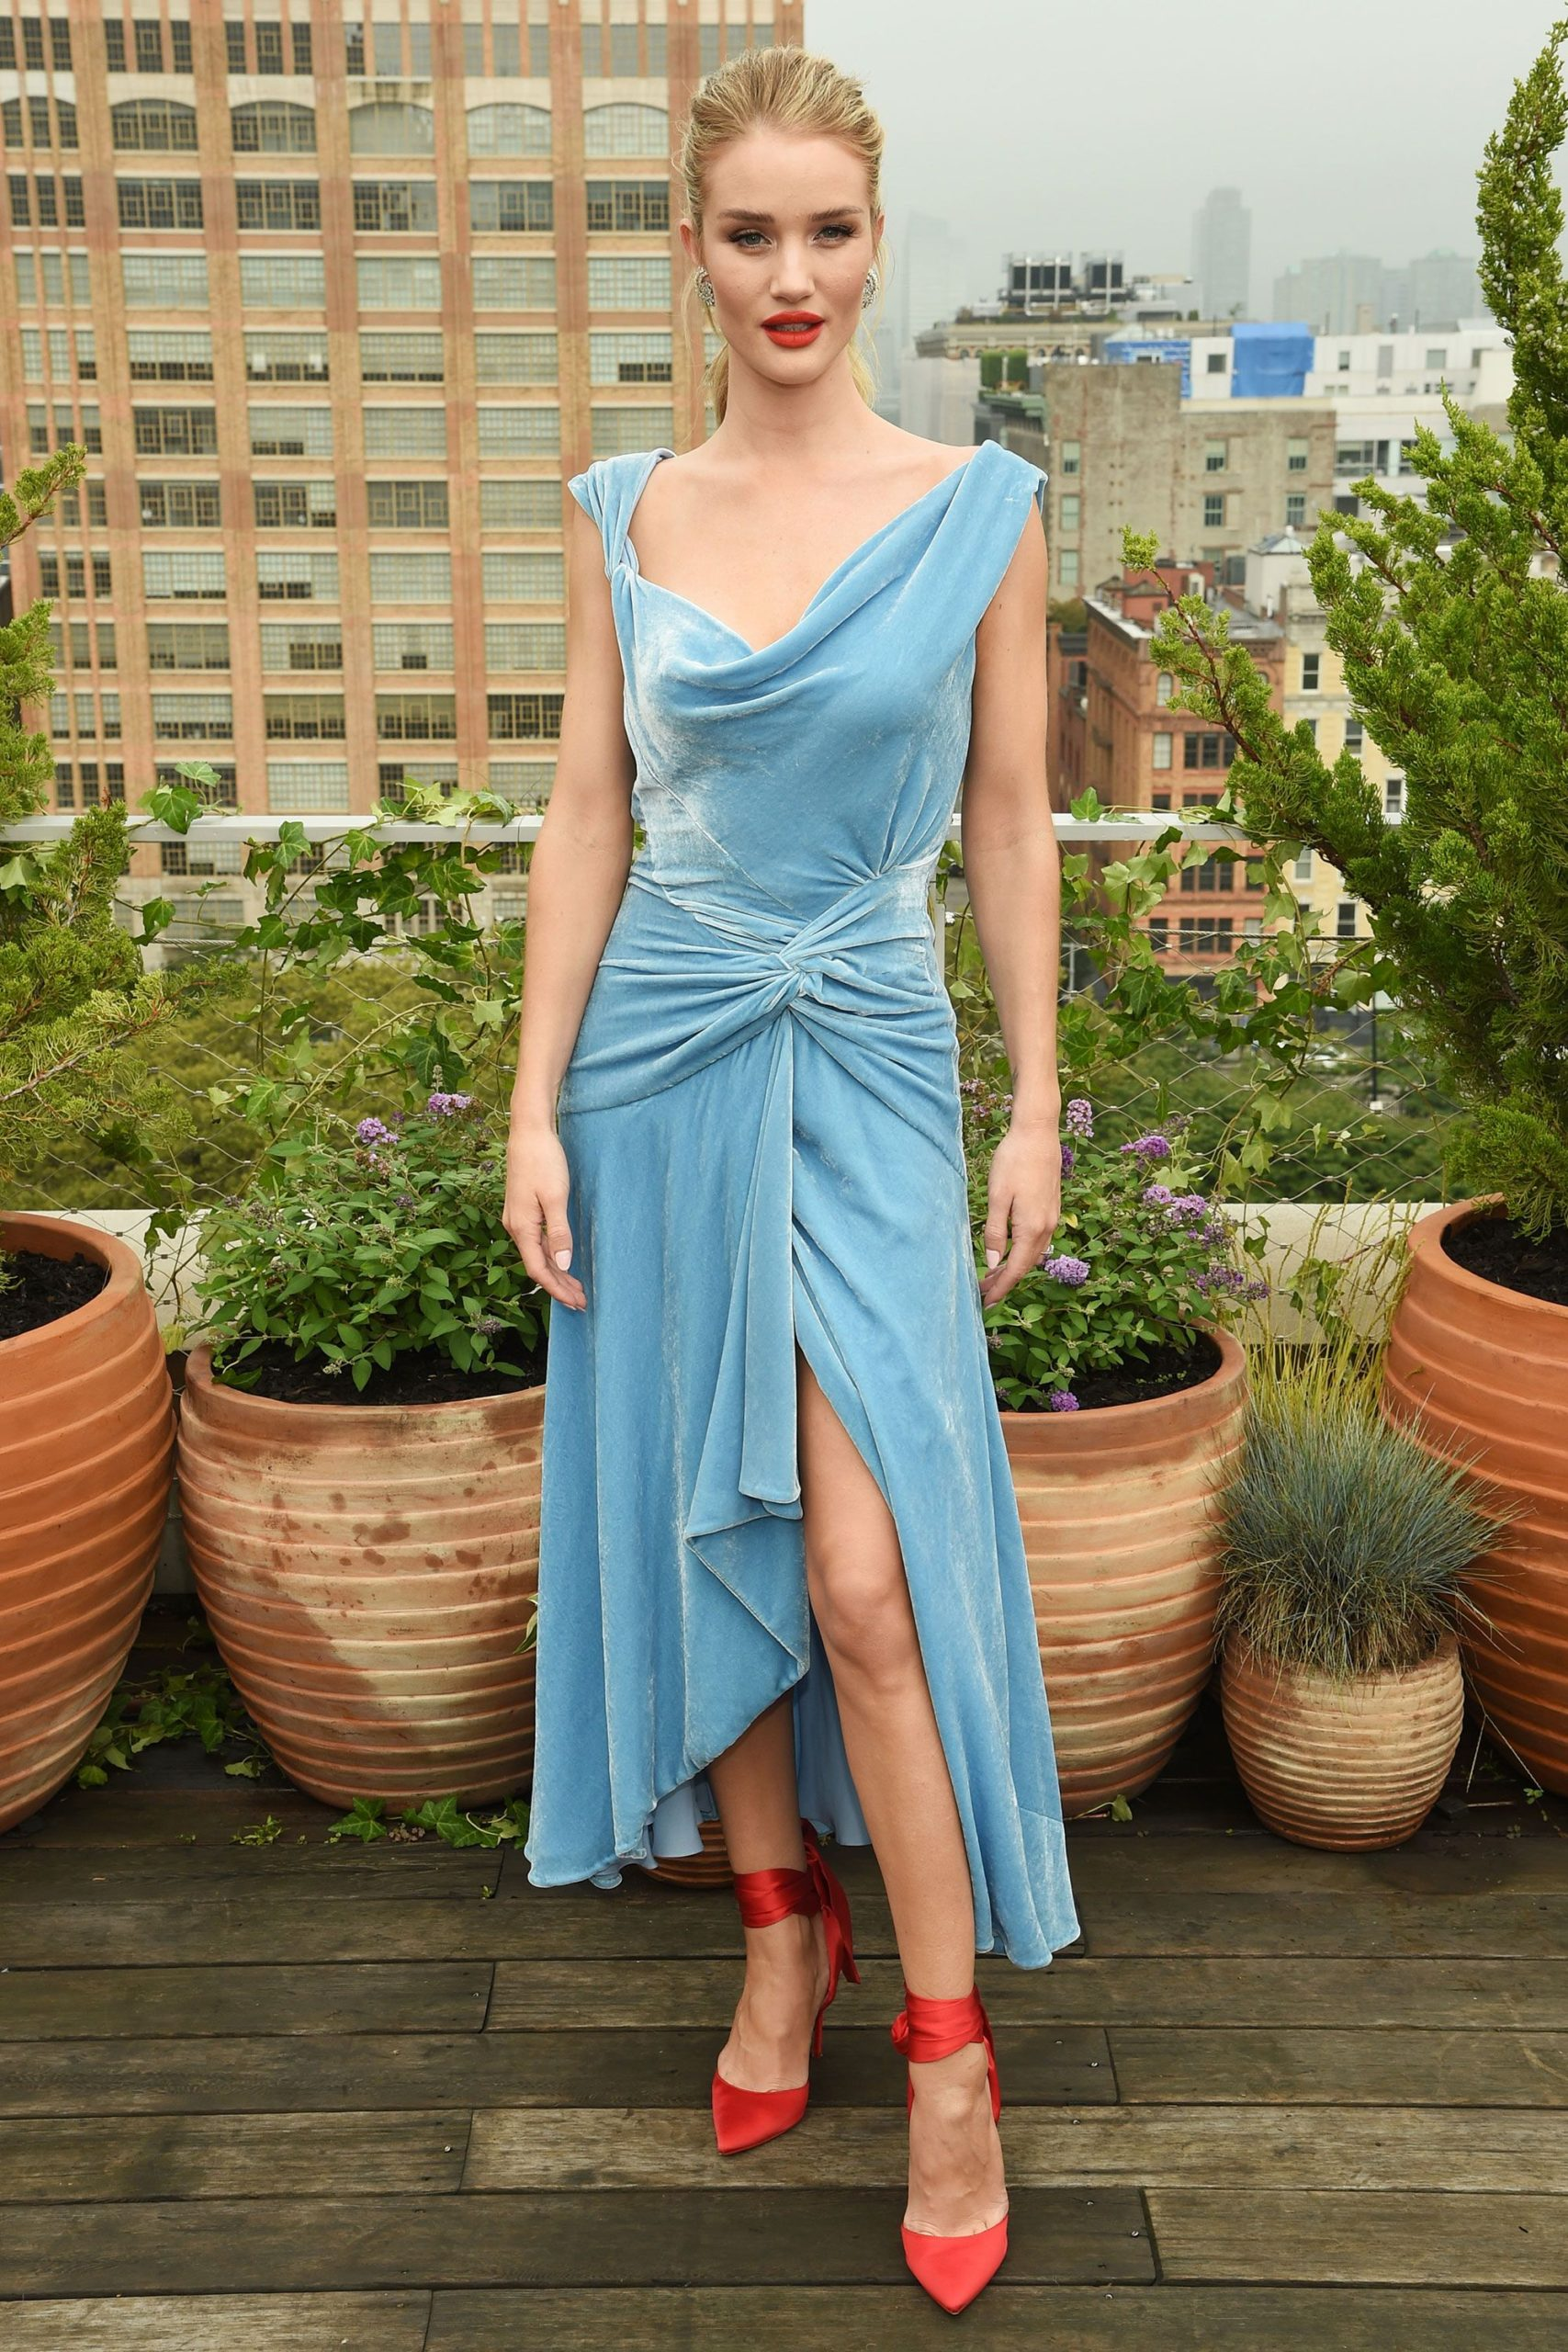 Rosie Huntington Whiteley Nice Blue Dress scaled - Rosie Huntington Whiteley Nice Blue Dress